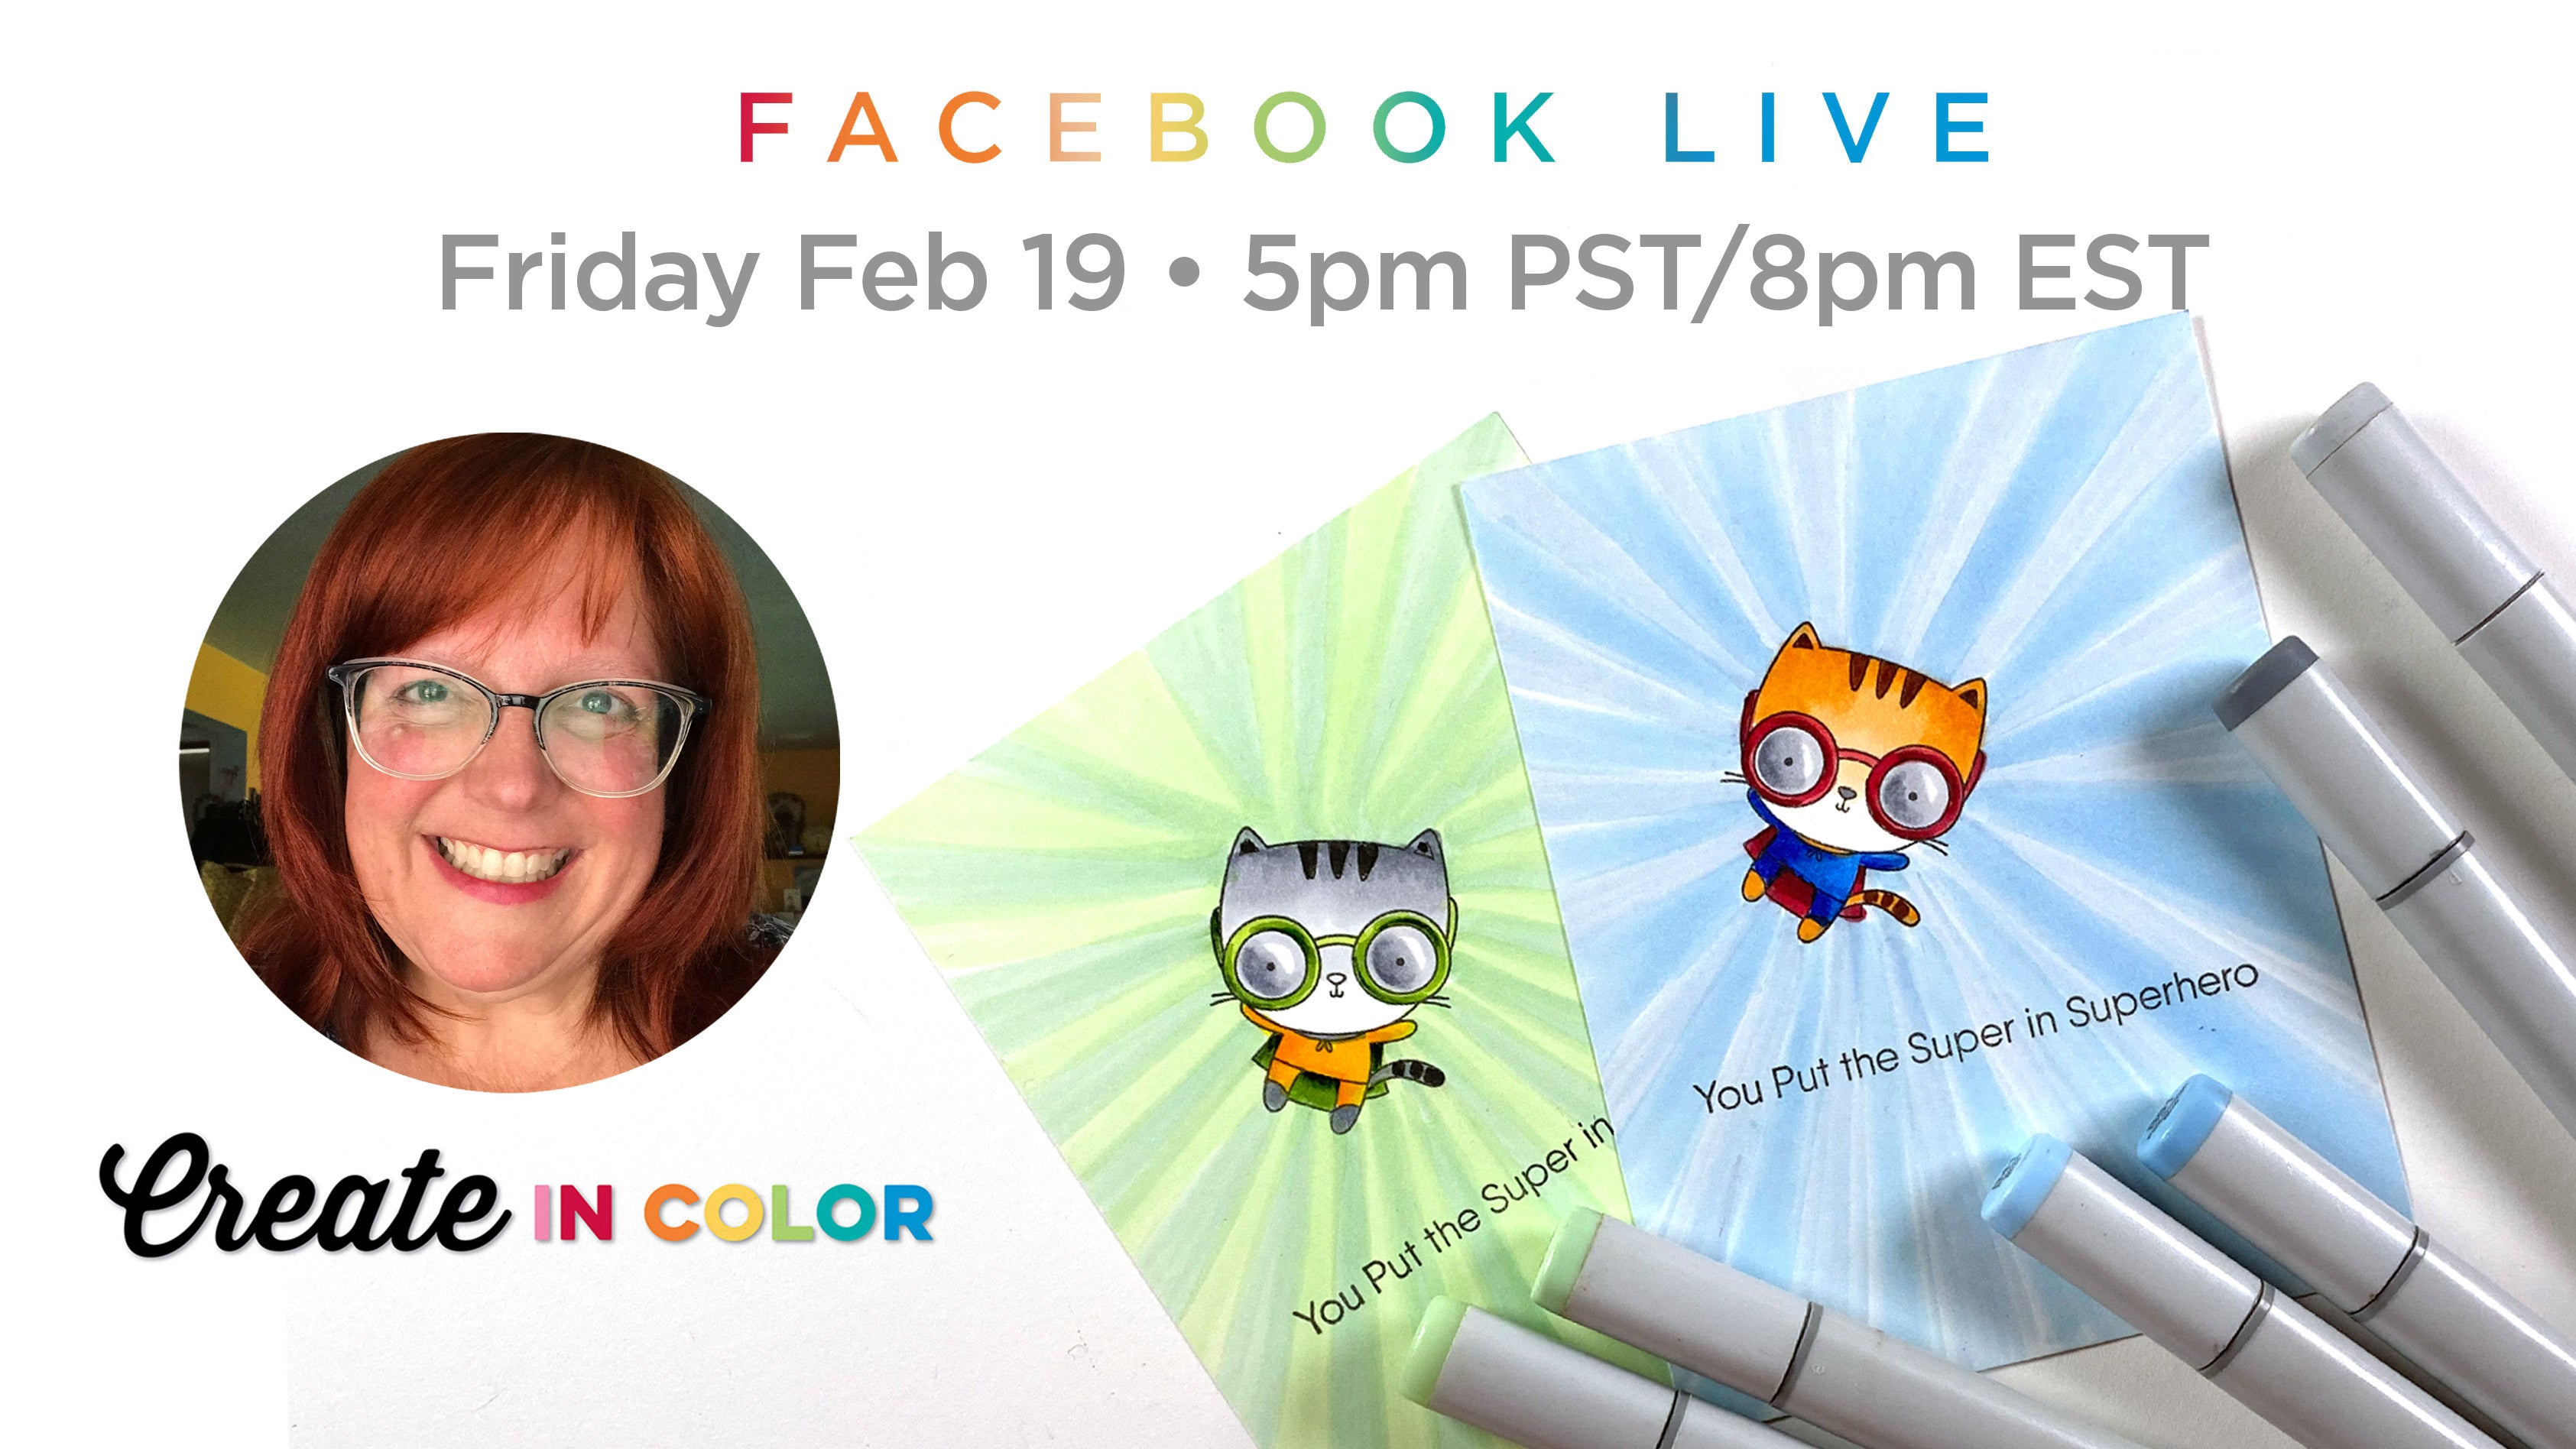 Facebook Live event with Sandy Allnock featuring products from My Favorite Things #mftstamps